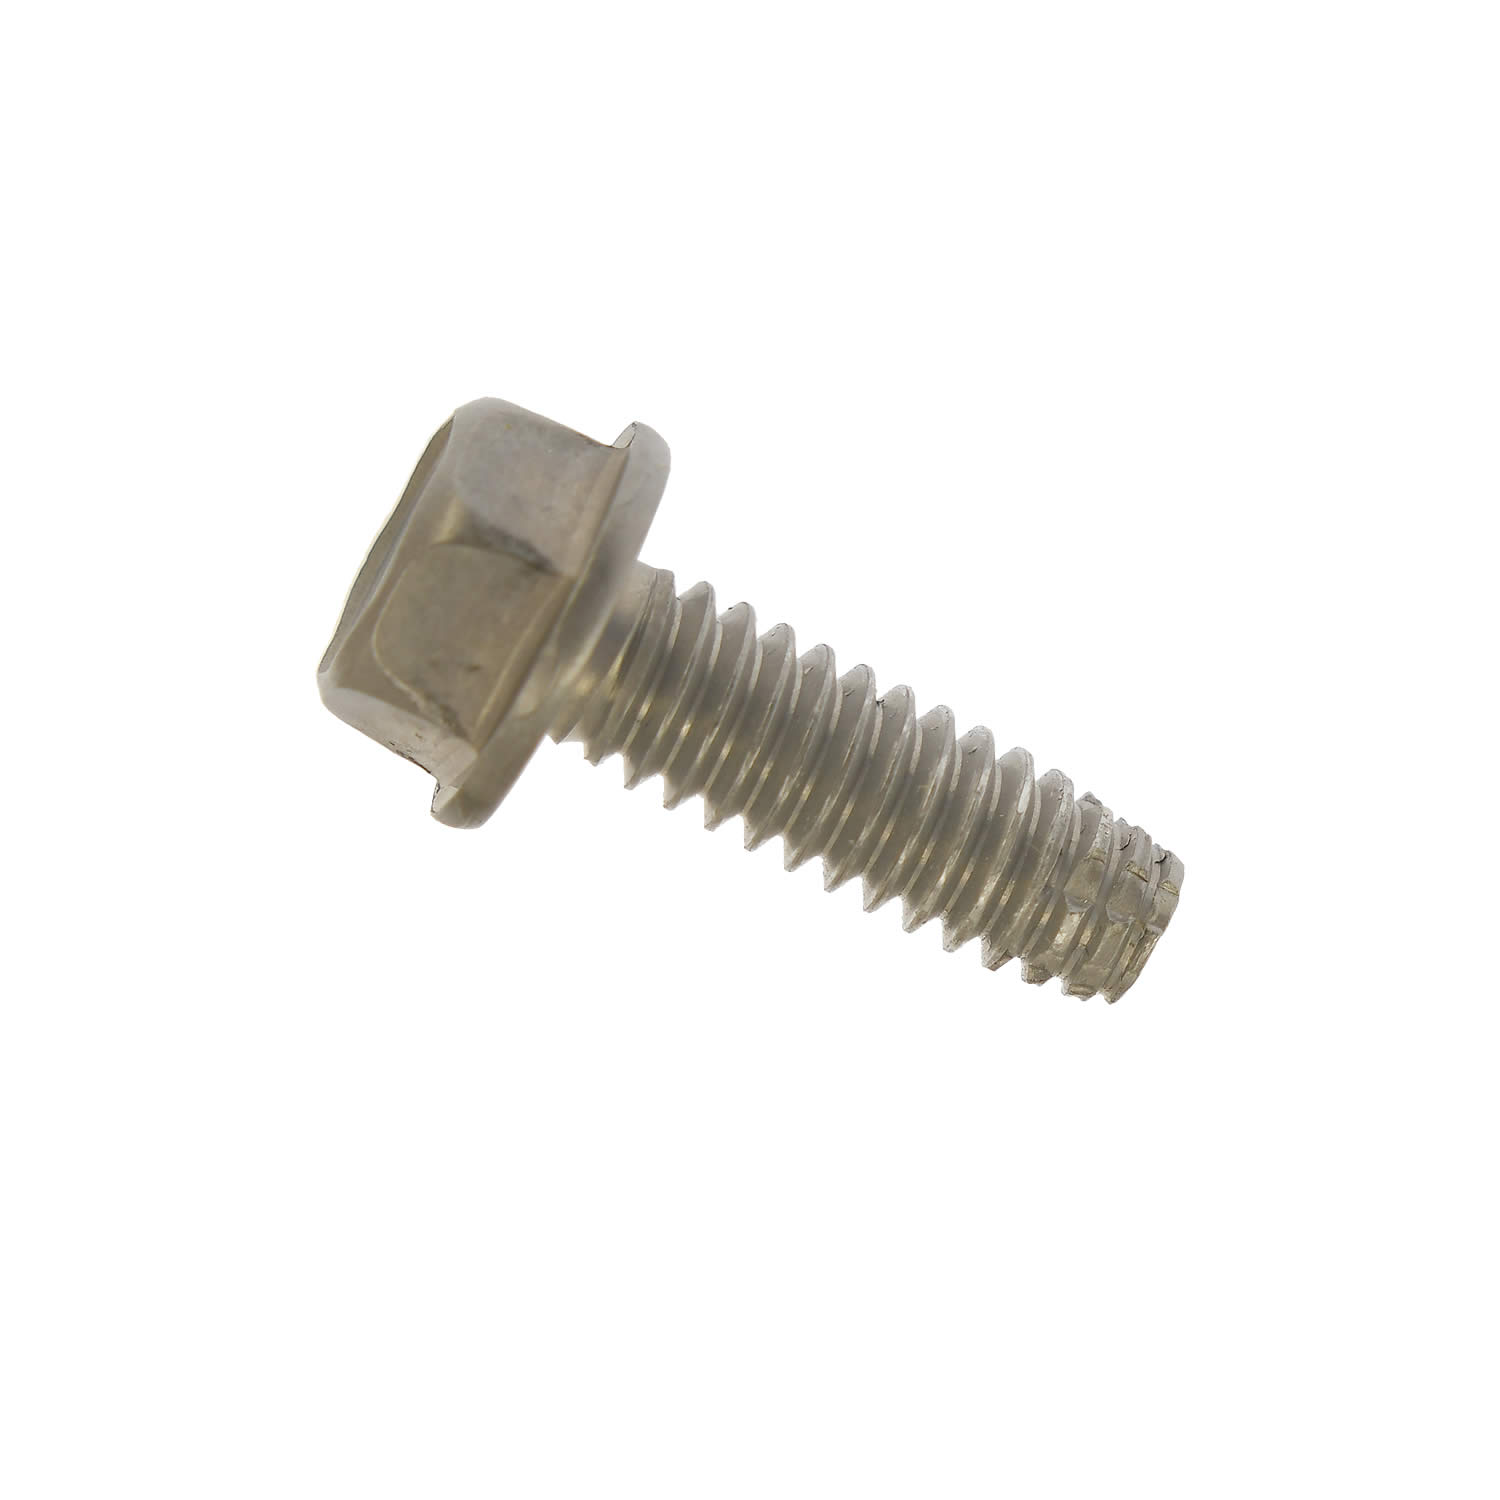 Self Tapping Bolt 1 4 Governor Hole Gopowersports Com